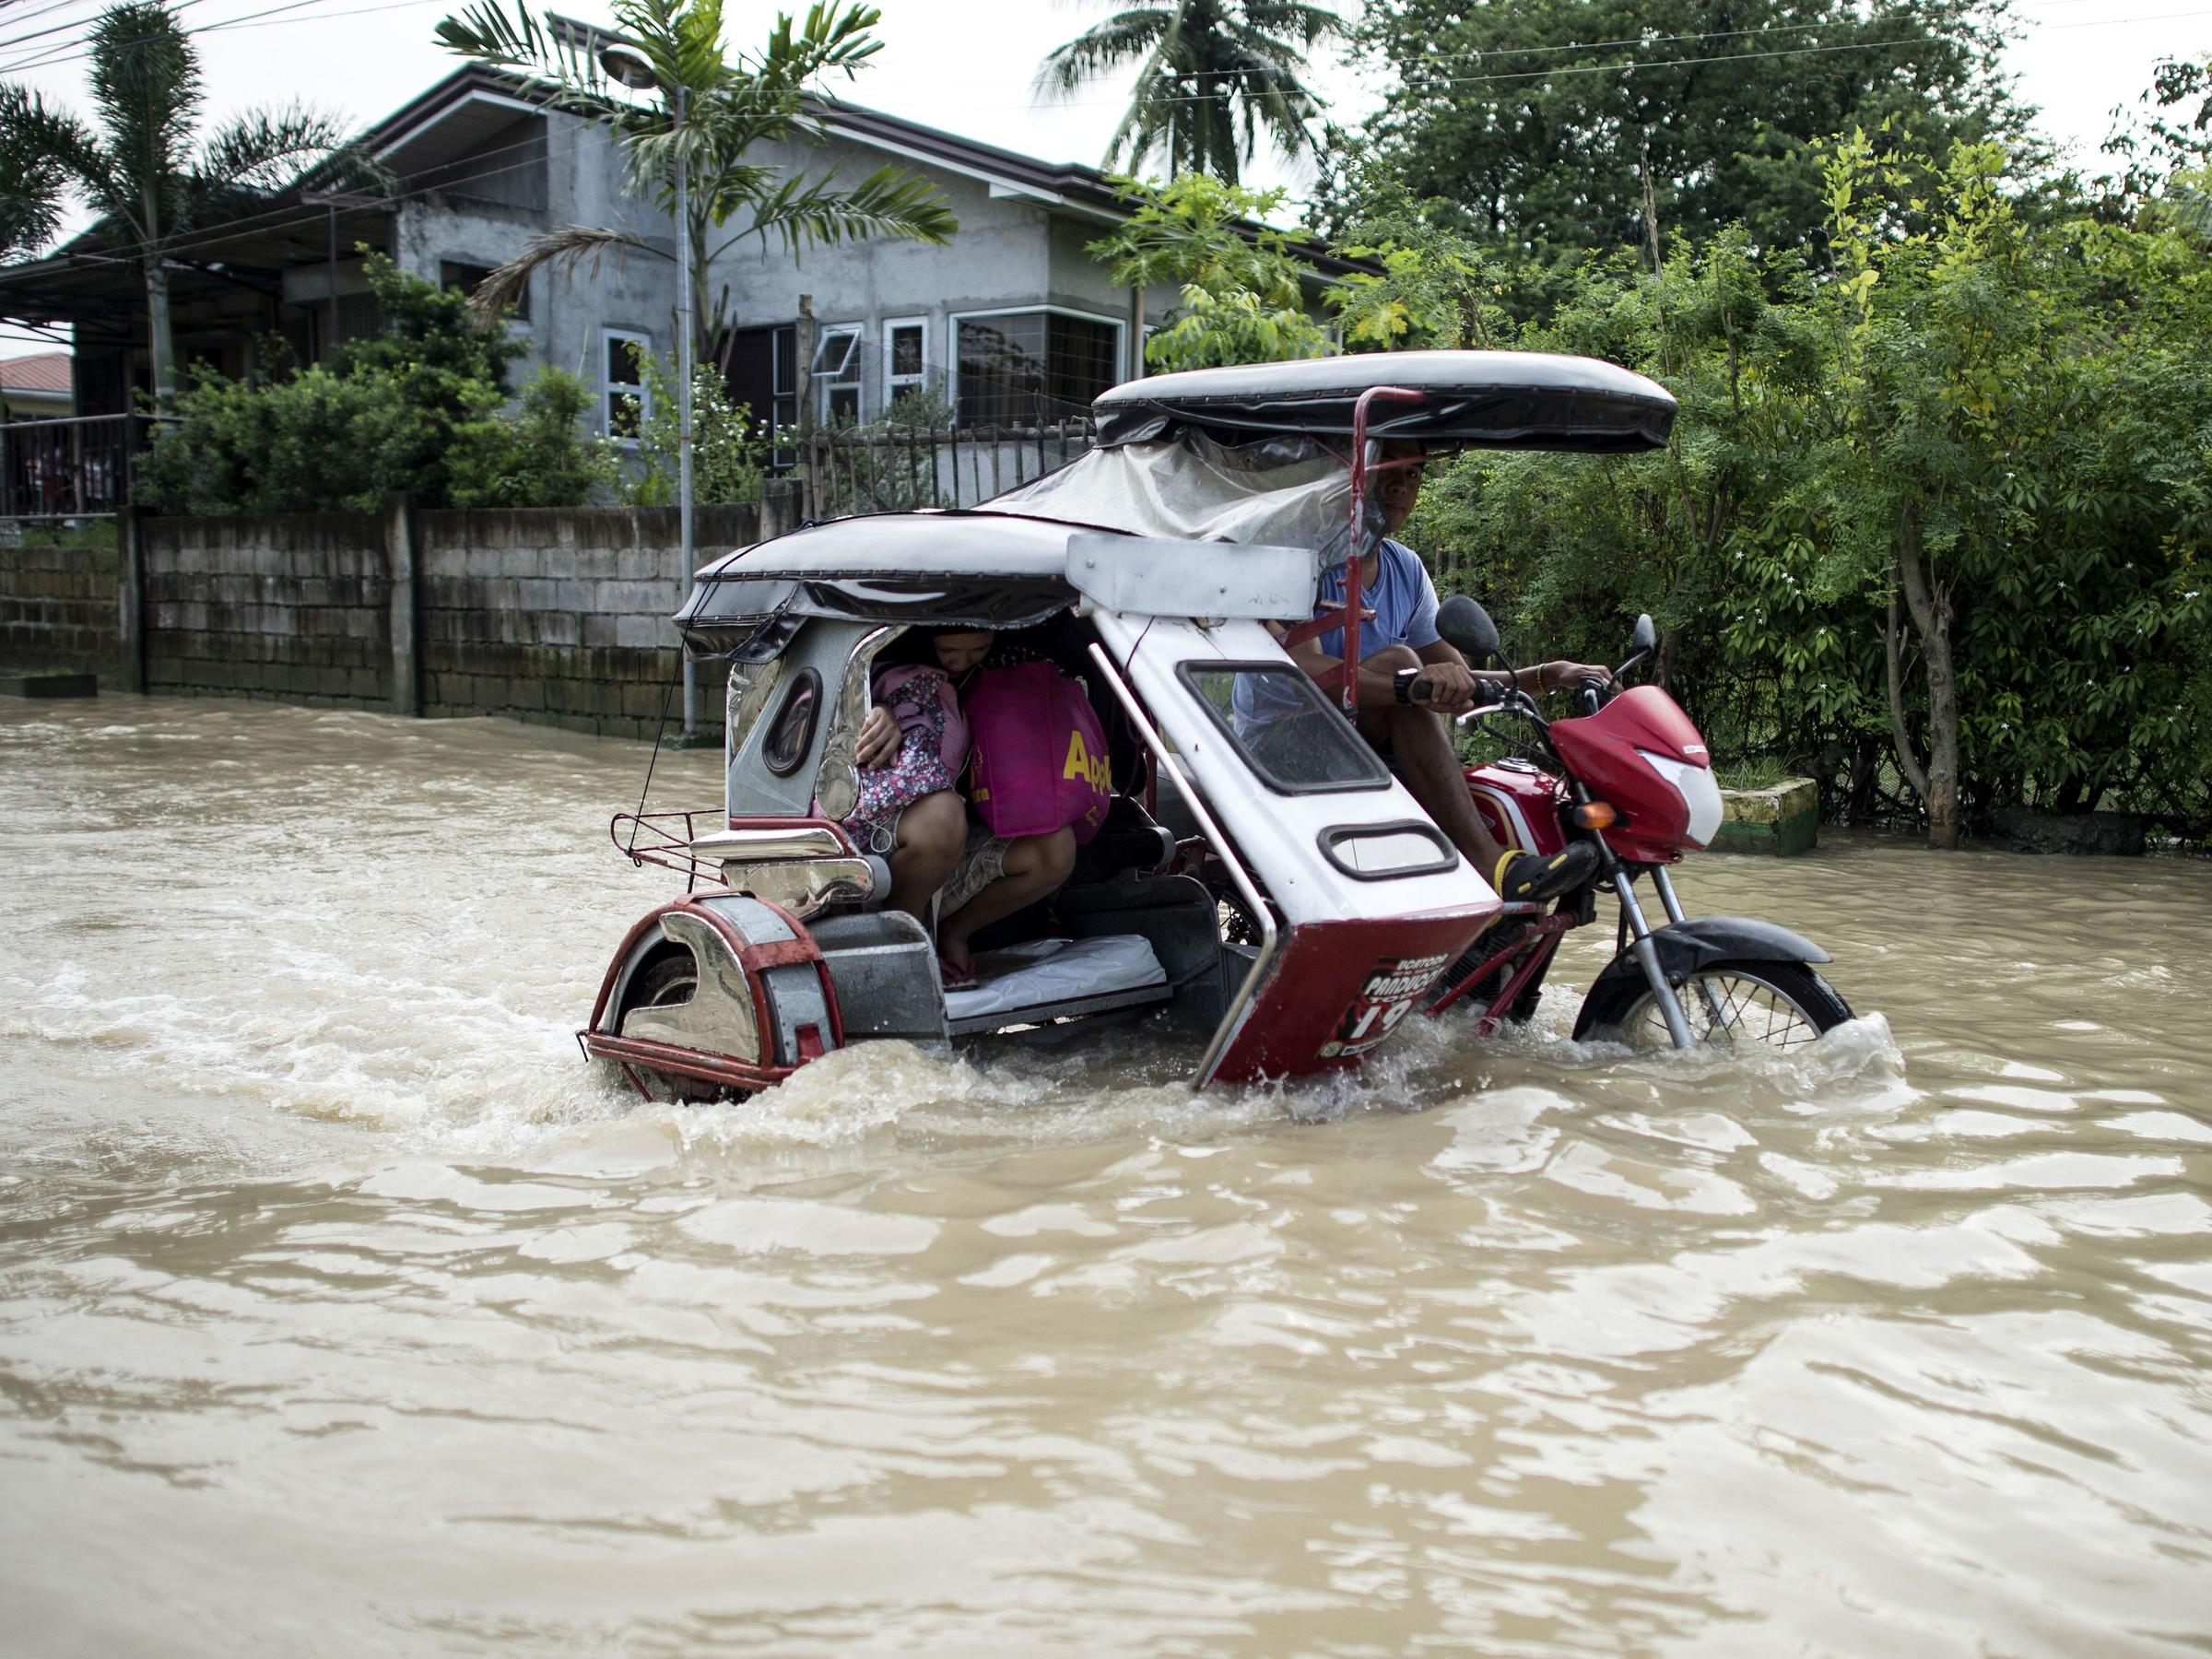 A rickshaw driver wades through a flooded street in Calumpit Bulacan in the Philippines on Monday